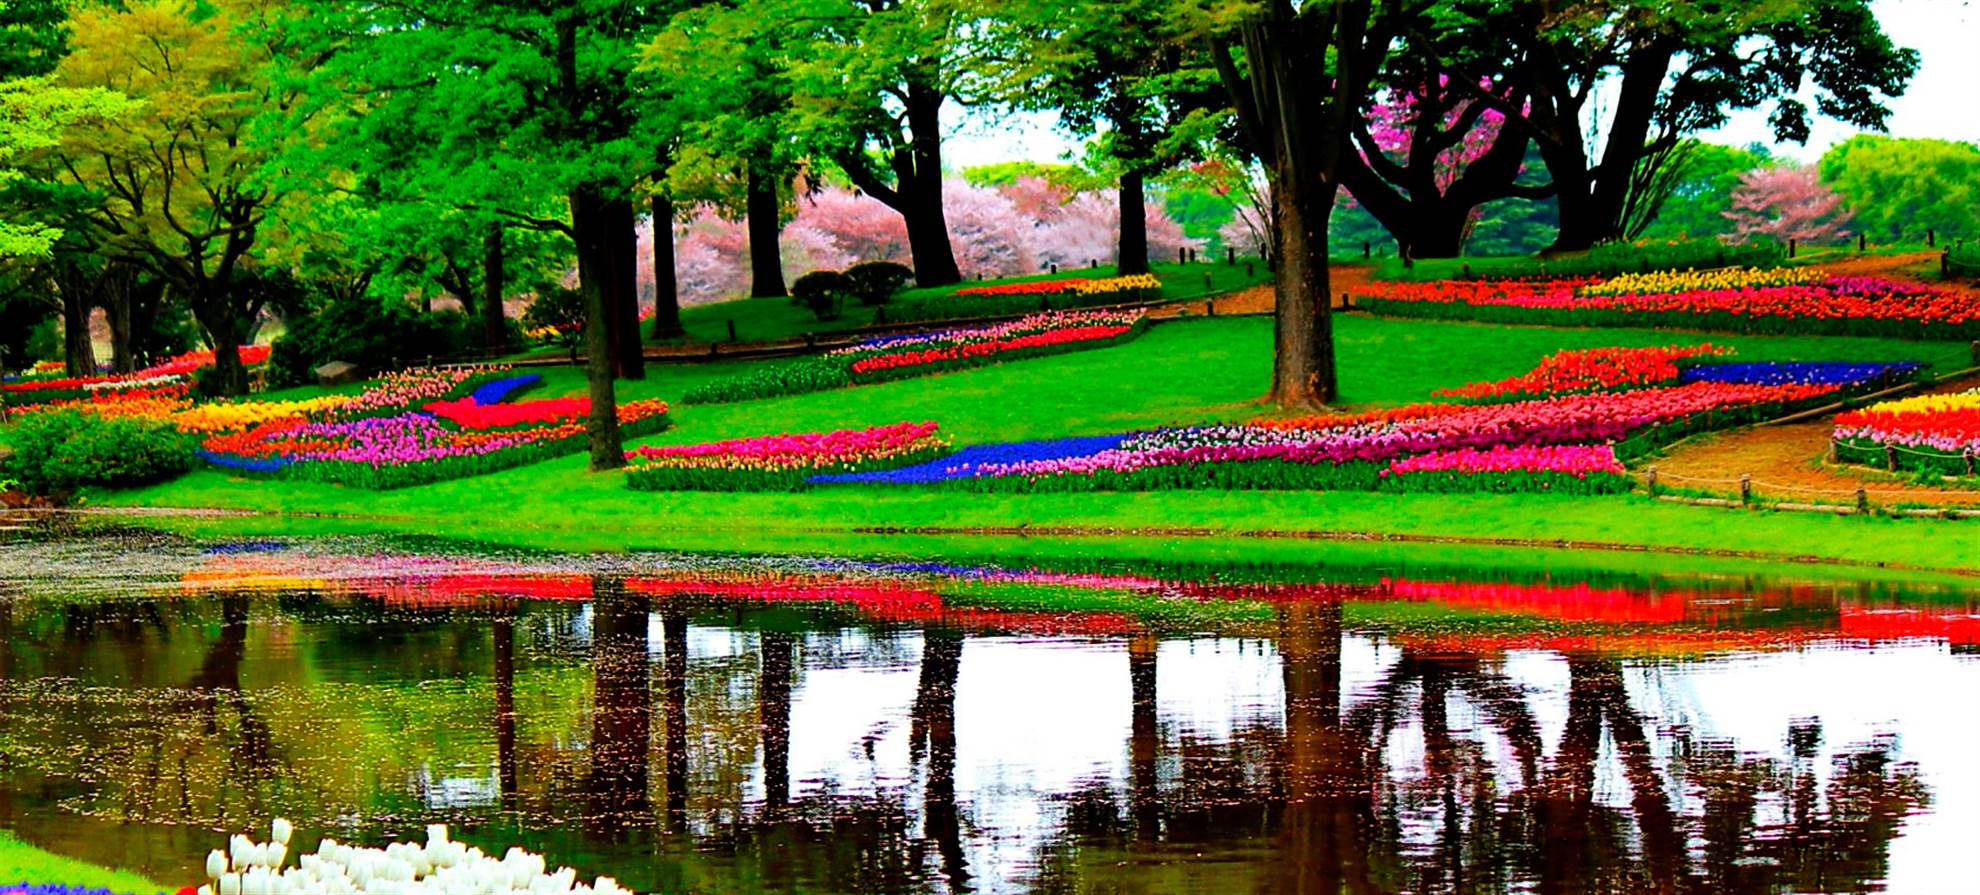 Keukenhof Gardens Tour from Amsterdam (Out of Season)